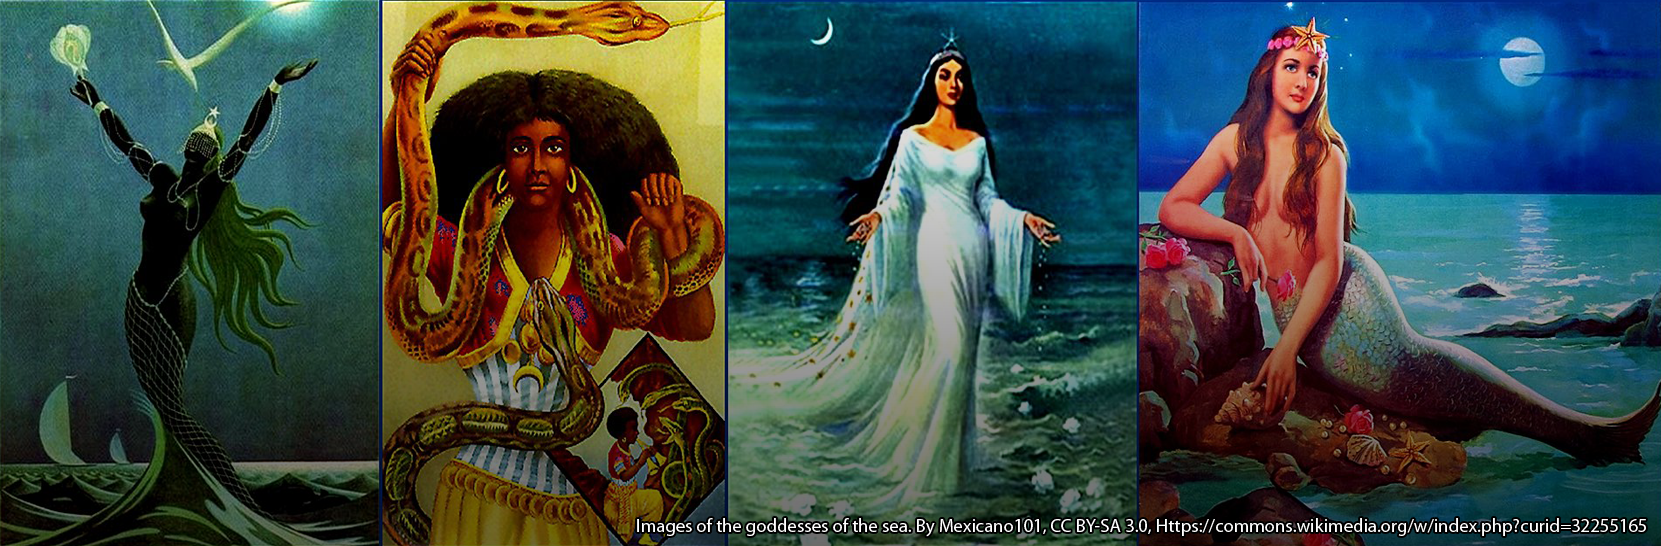 Images of the goddesses of the sea. By Mexicano101, CC BY-SA 3.0, Https://commons.wikimedia.org/w/index.php?curid=32255165